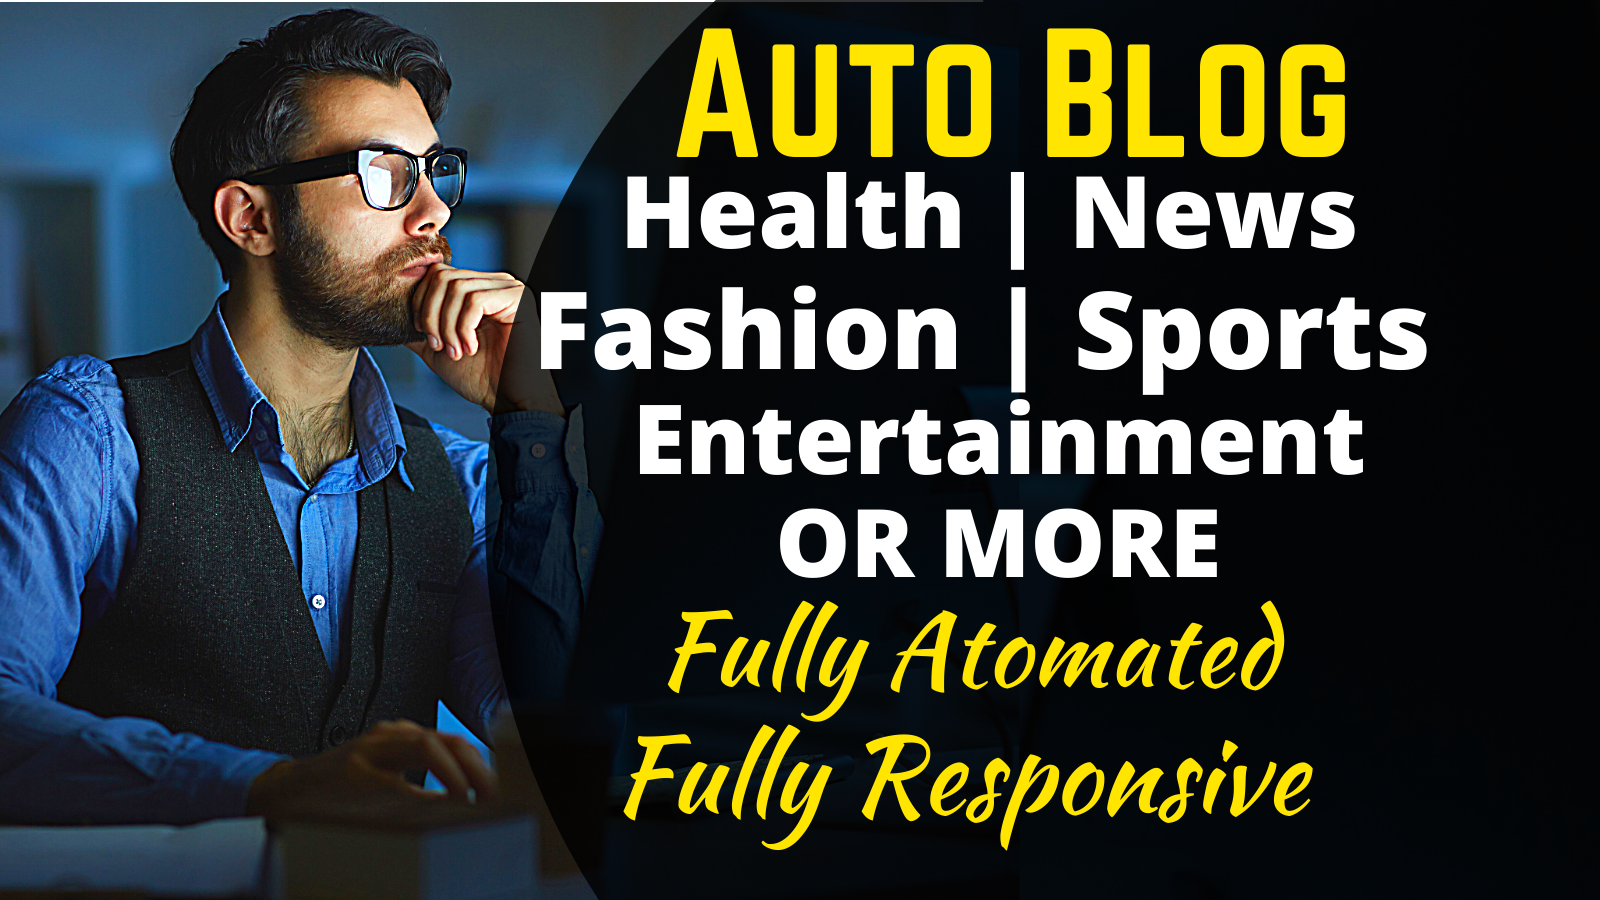 I will build autopilot automated website WordPress autoblog,  auto blogging